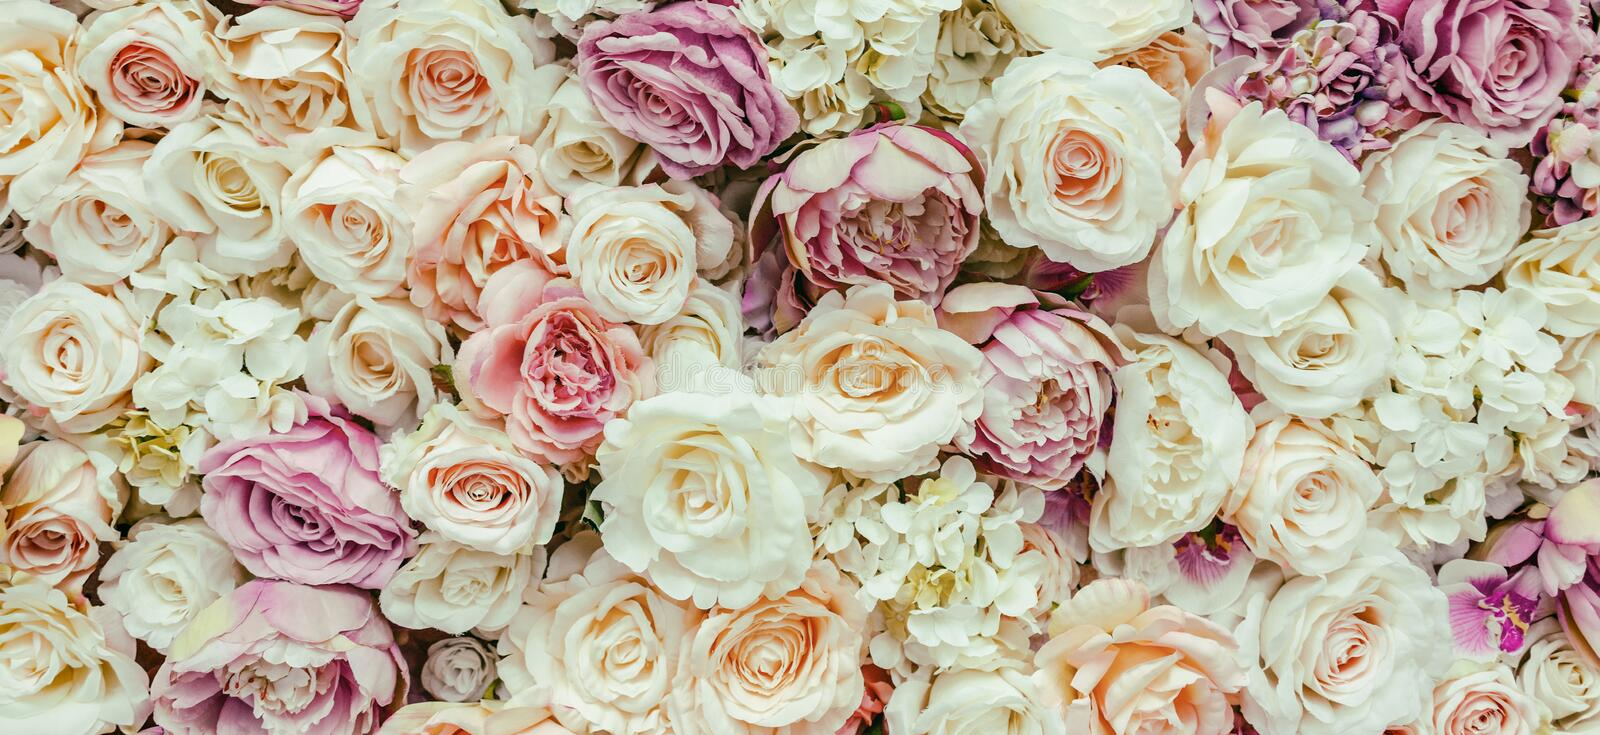 Flowers wall background with amazing red and white roses, Wedding decoration, hand made. Toning royalty free stock photography